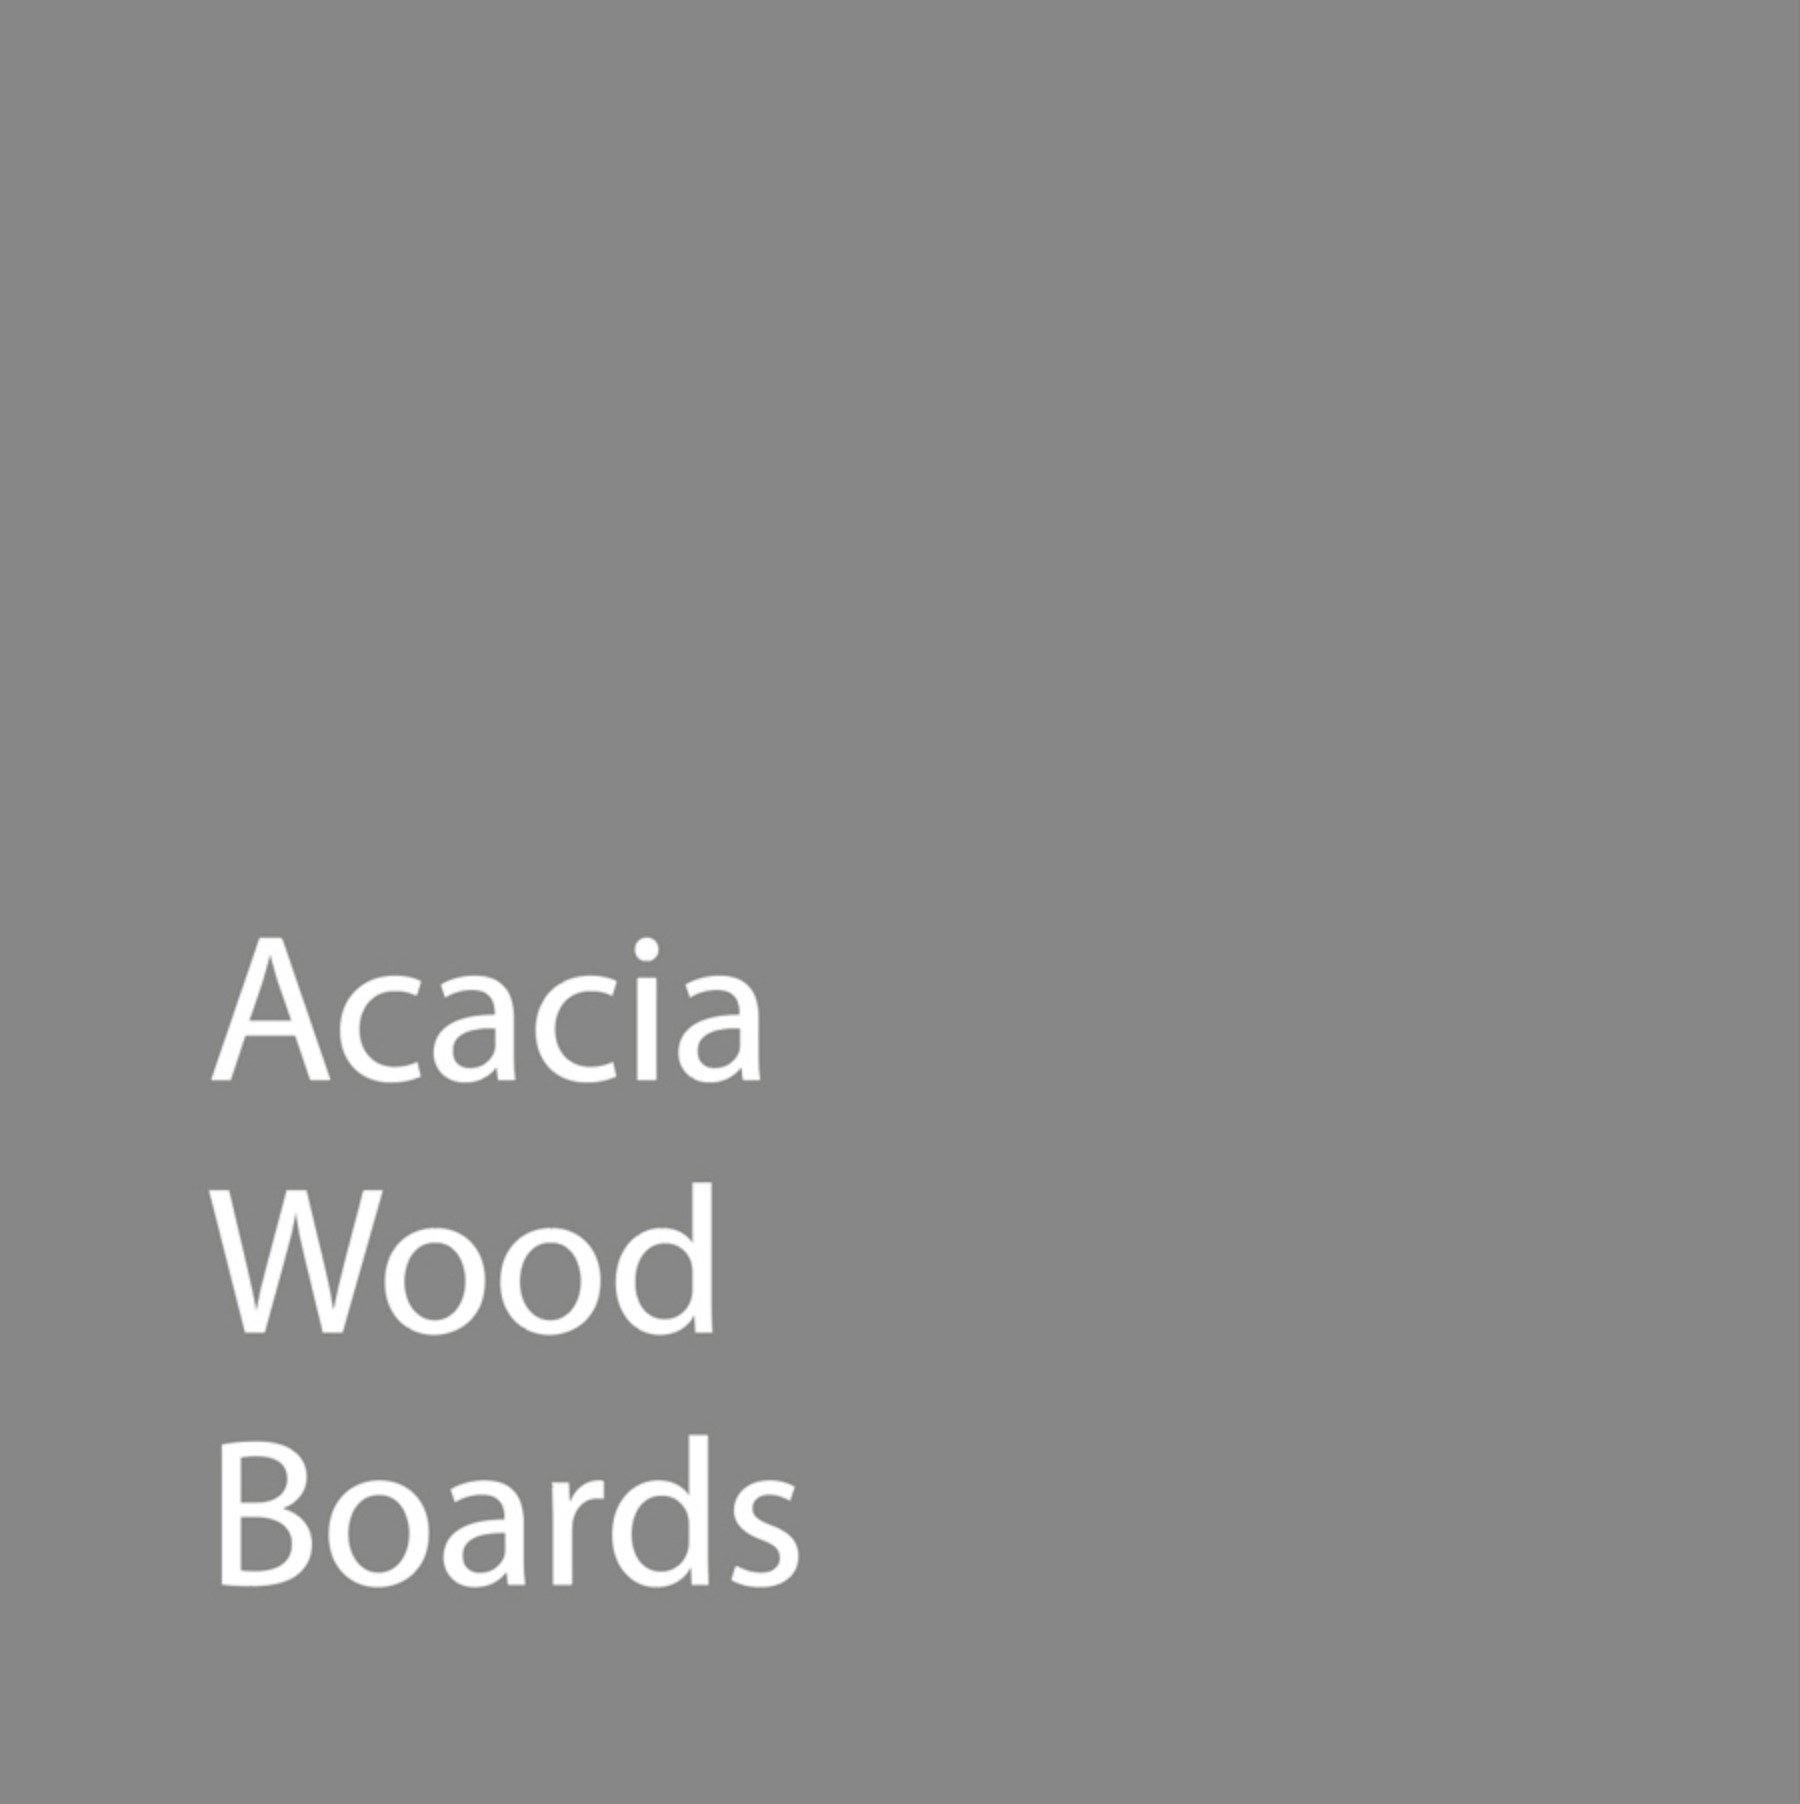 Acacia Wood Boards